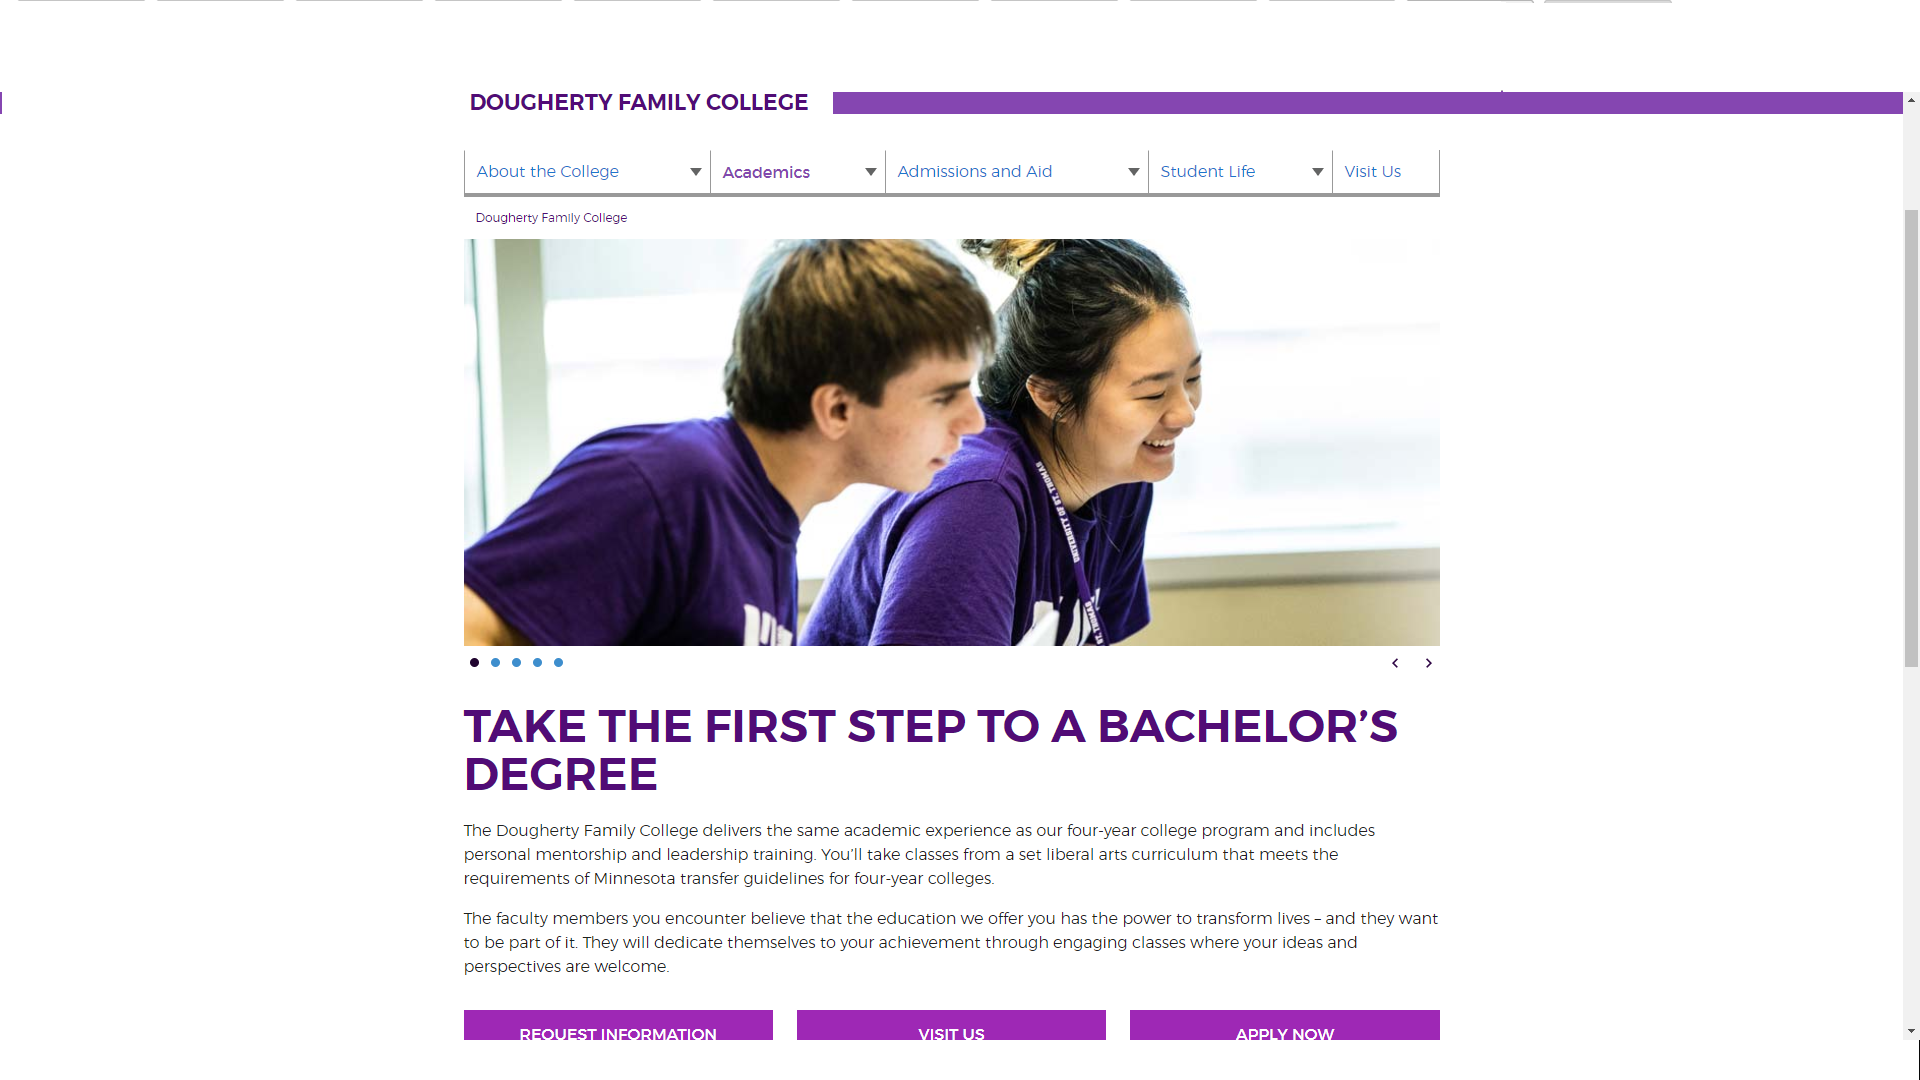 Dougherty Family College website sample